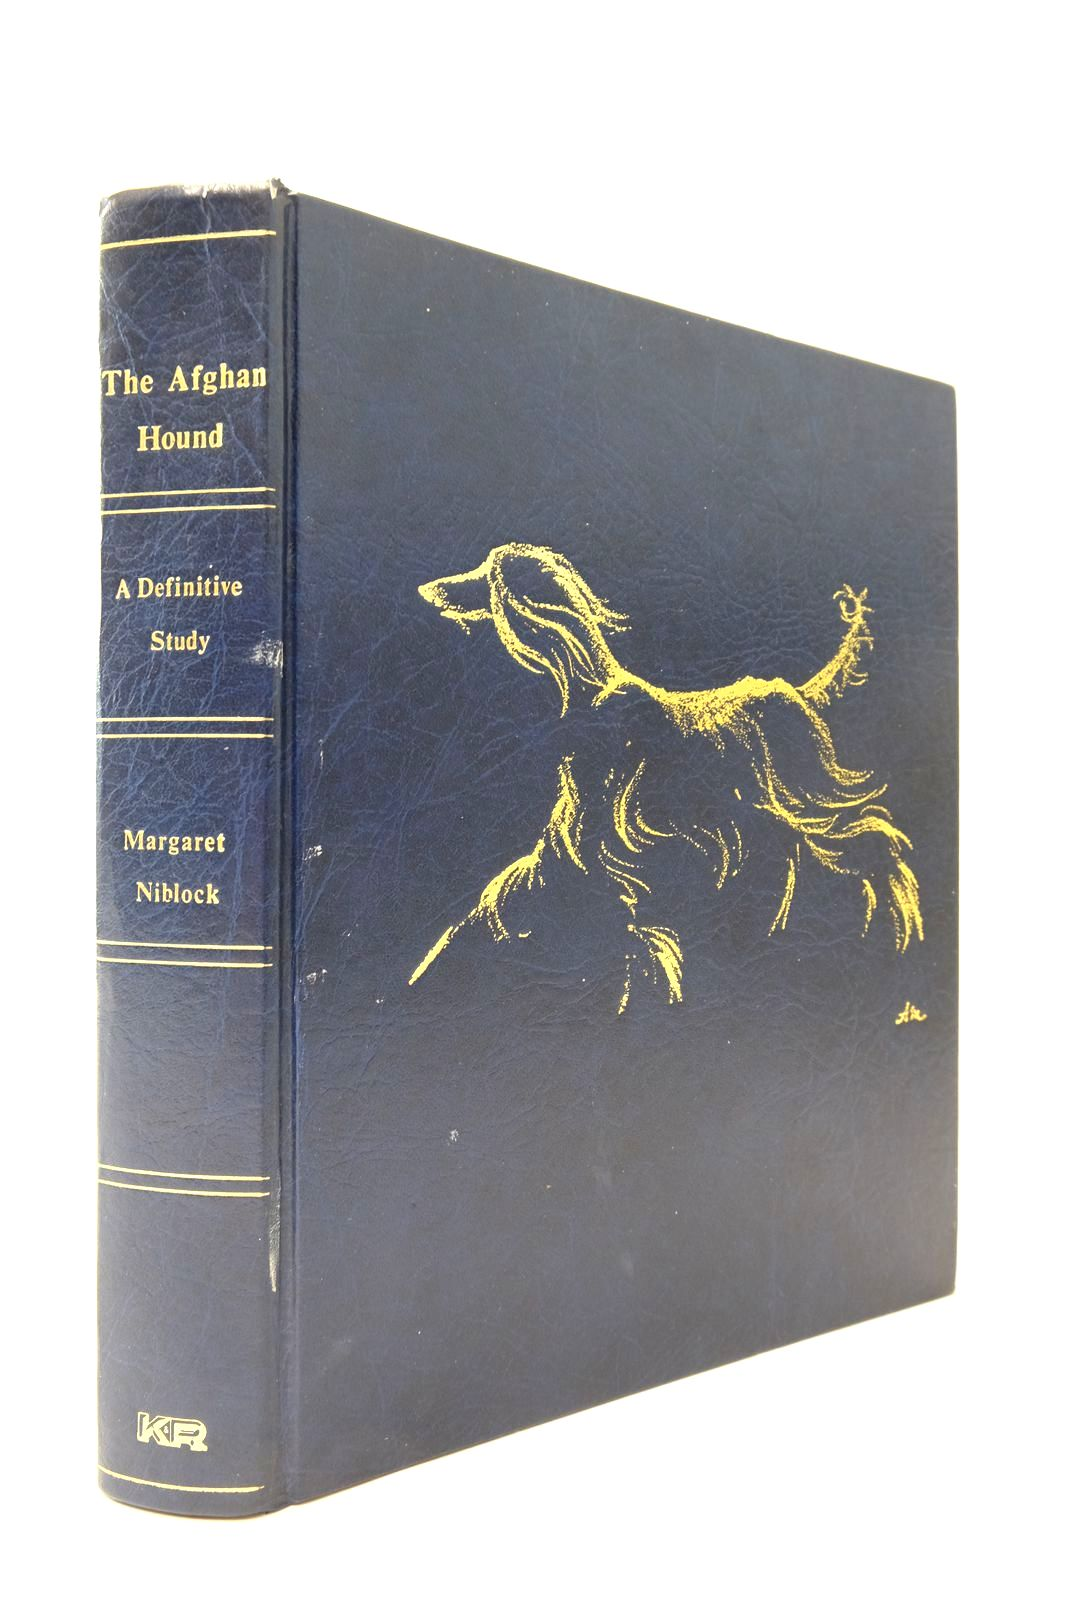 Photo of THE AFGHAN HOUND A DEFINITIVE STUDY written by Niblock, Margaret published by K. & R. Books Ltd. (STOCK CODE: 2134787)  for sale by Stella & Rose's Books